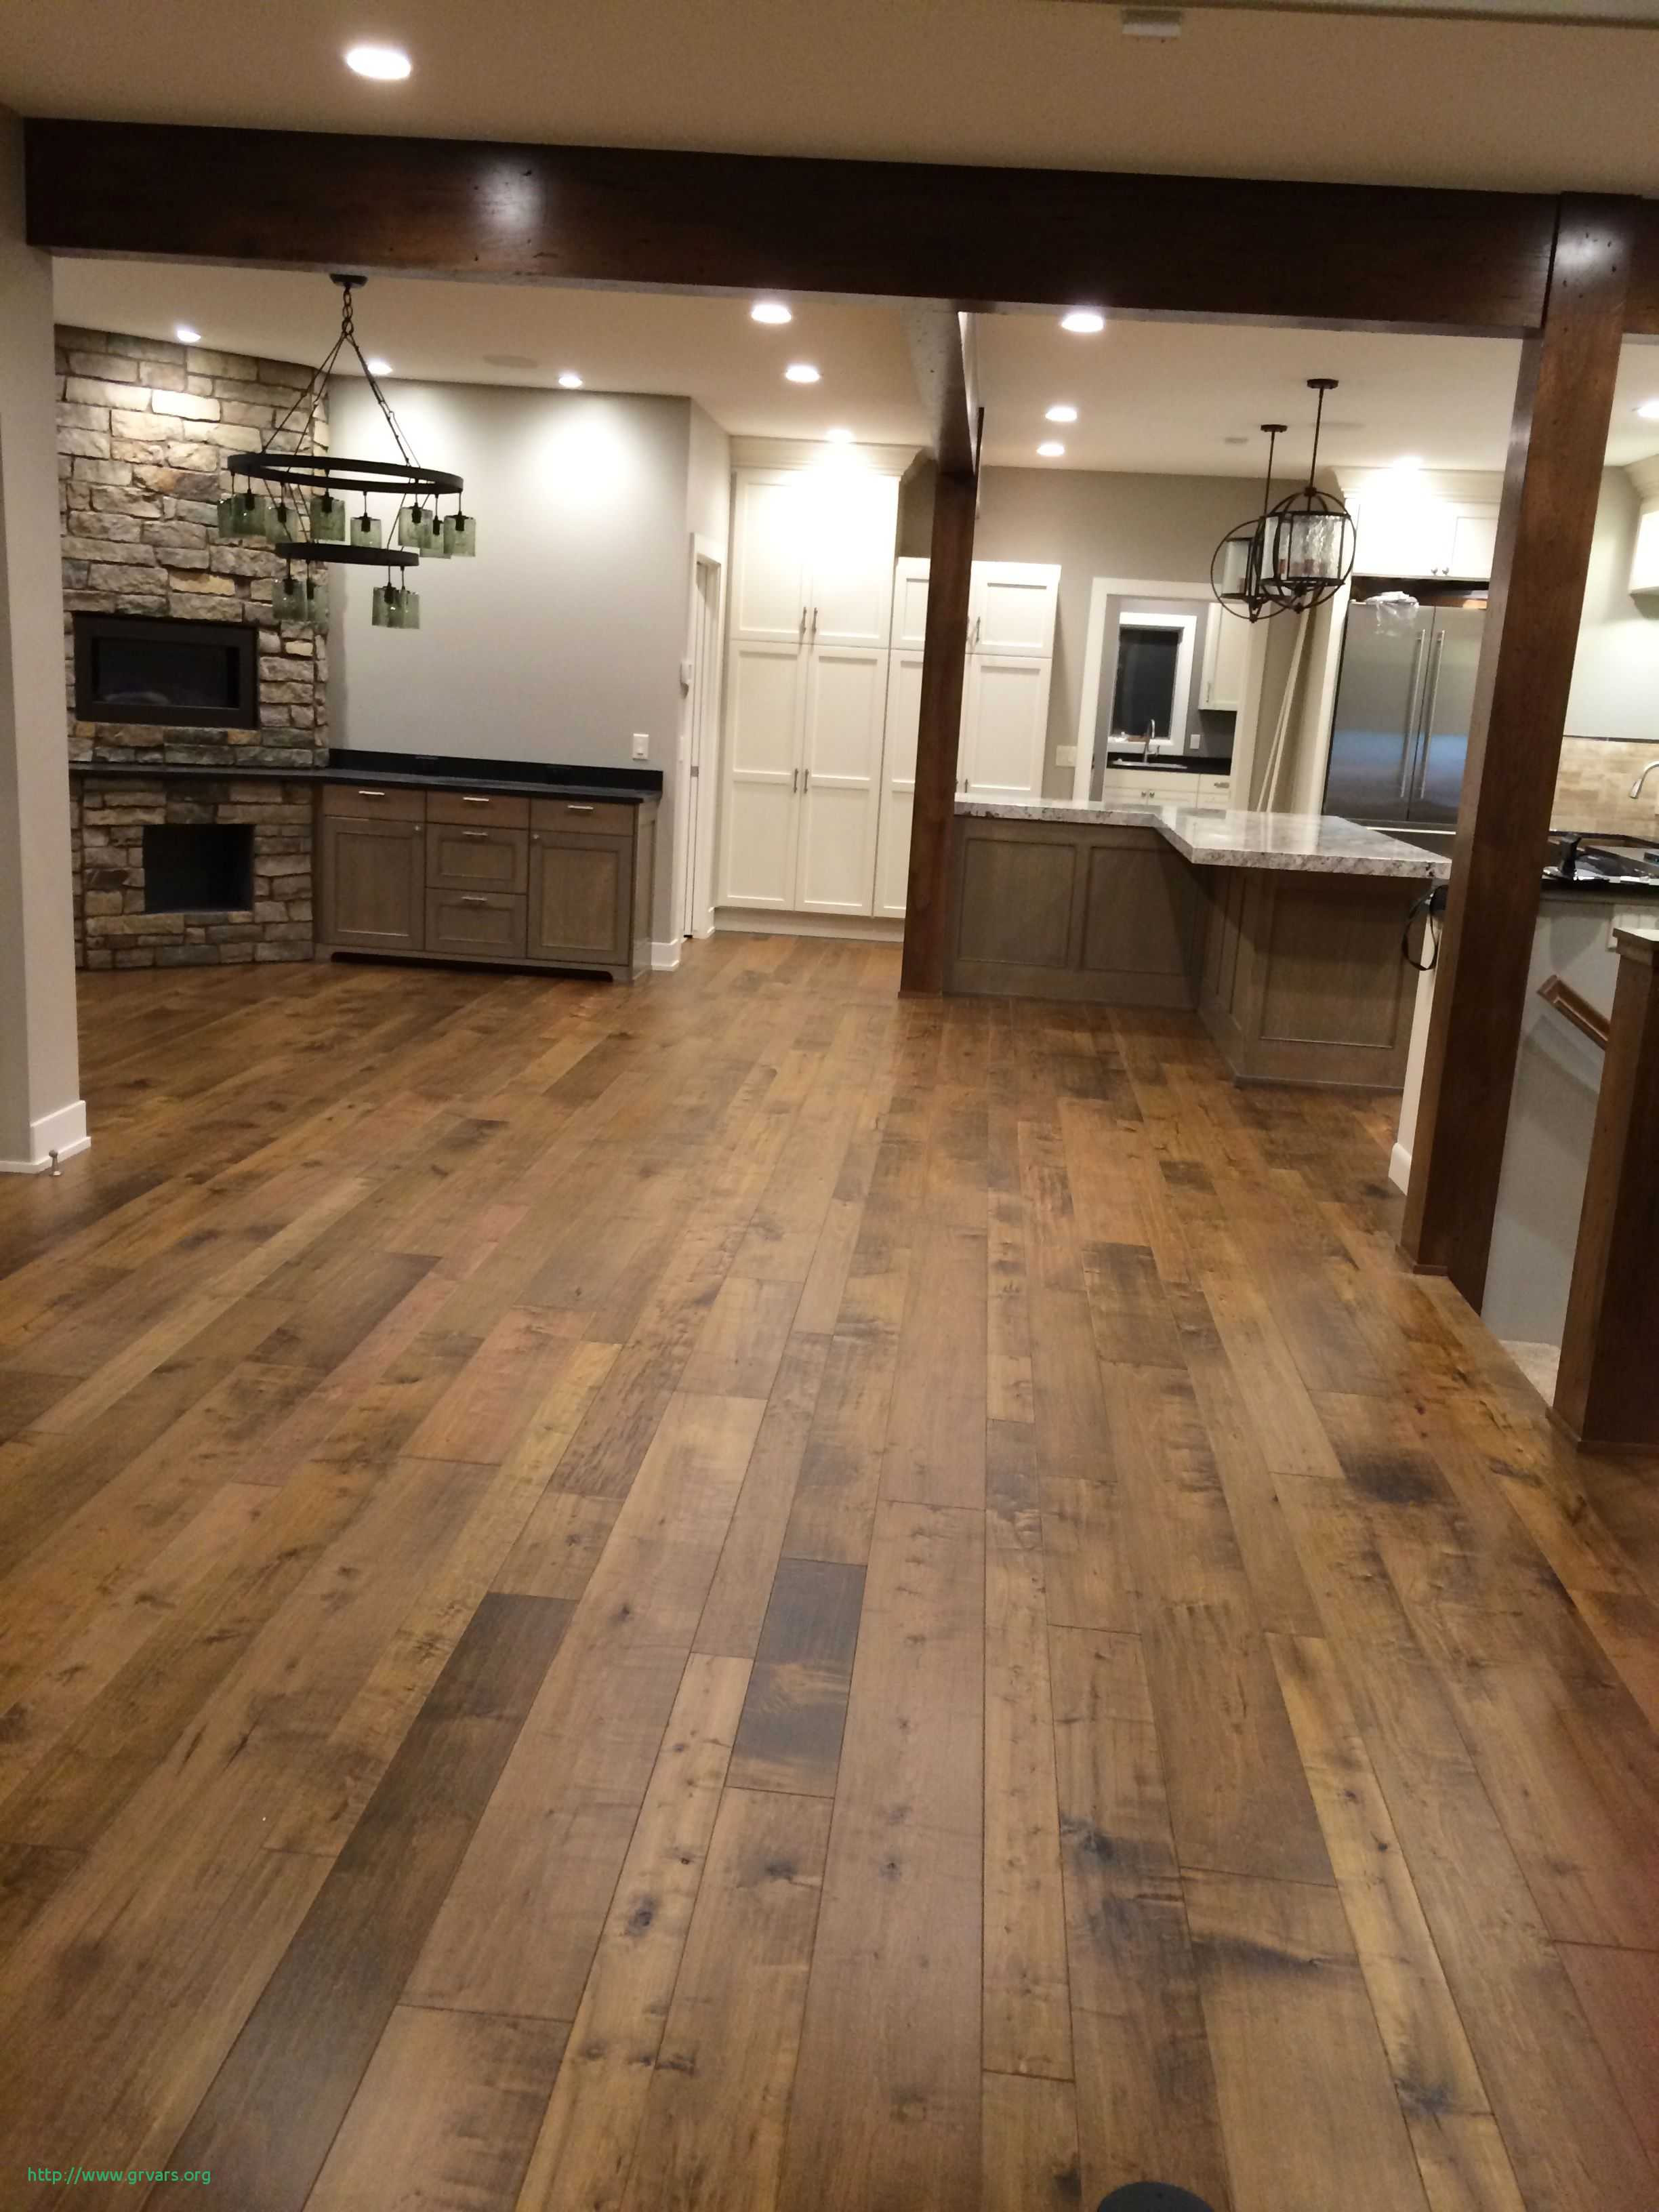 hickory engineered hardwood flooring pros and cons of 23 meilleur de can u refinish engineered hardwood floors ideas blog in the floors were purchased from carpets direct and installed by fulton construction engineered hardwood flooring collection